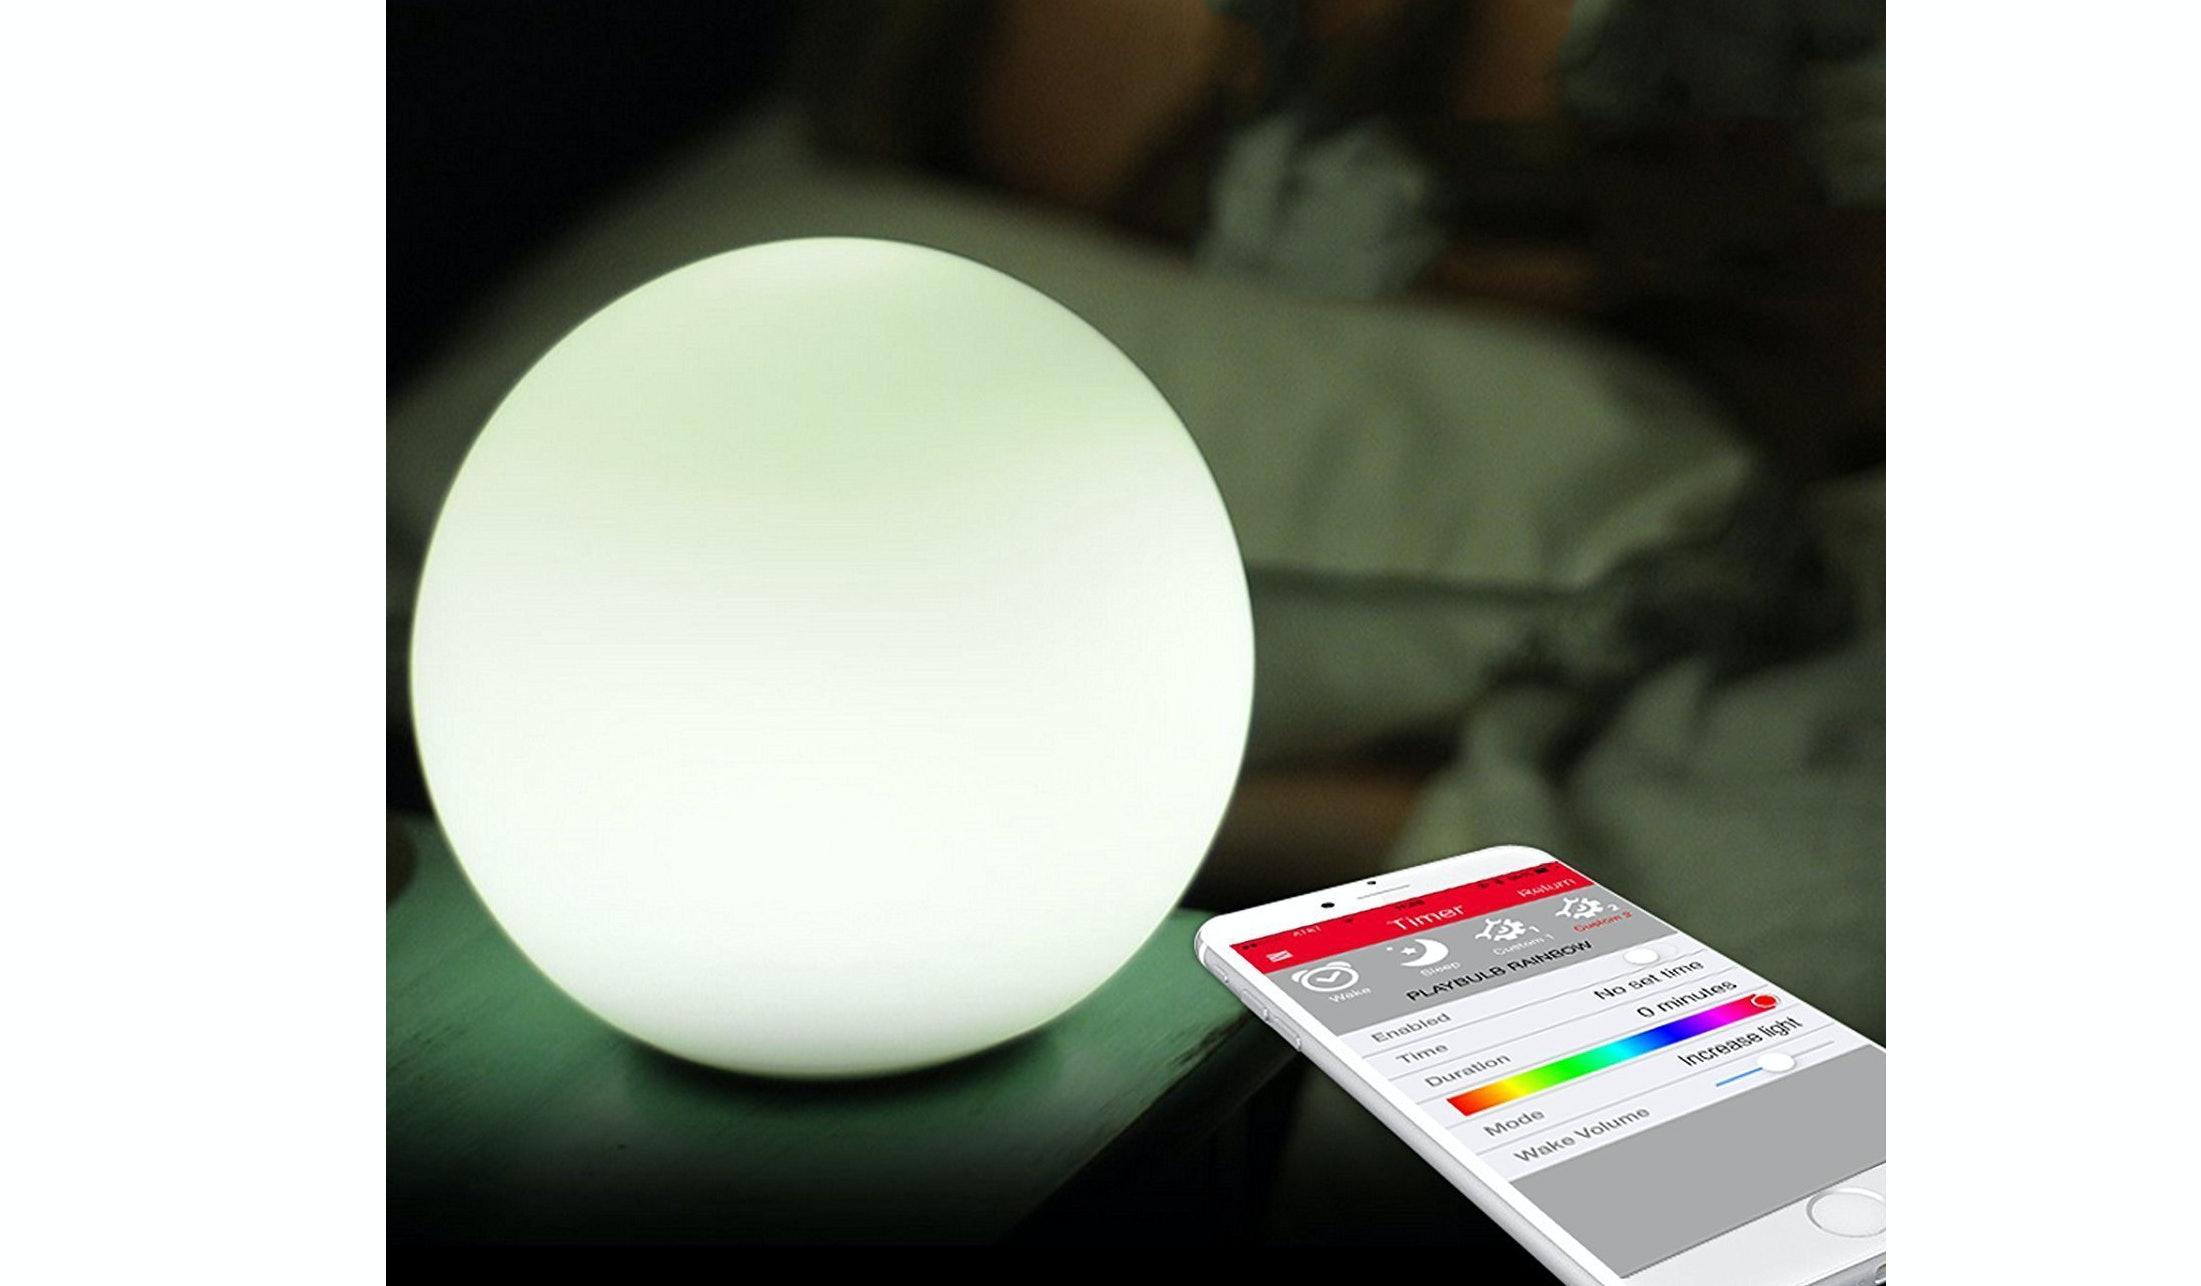 Best Nightlight For Sleep The 7 Best Nightlights For Adults